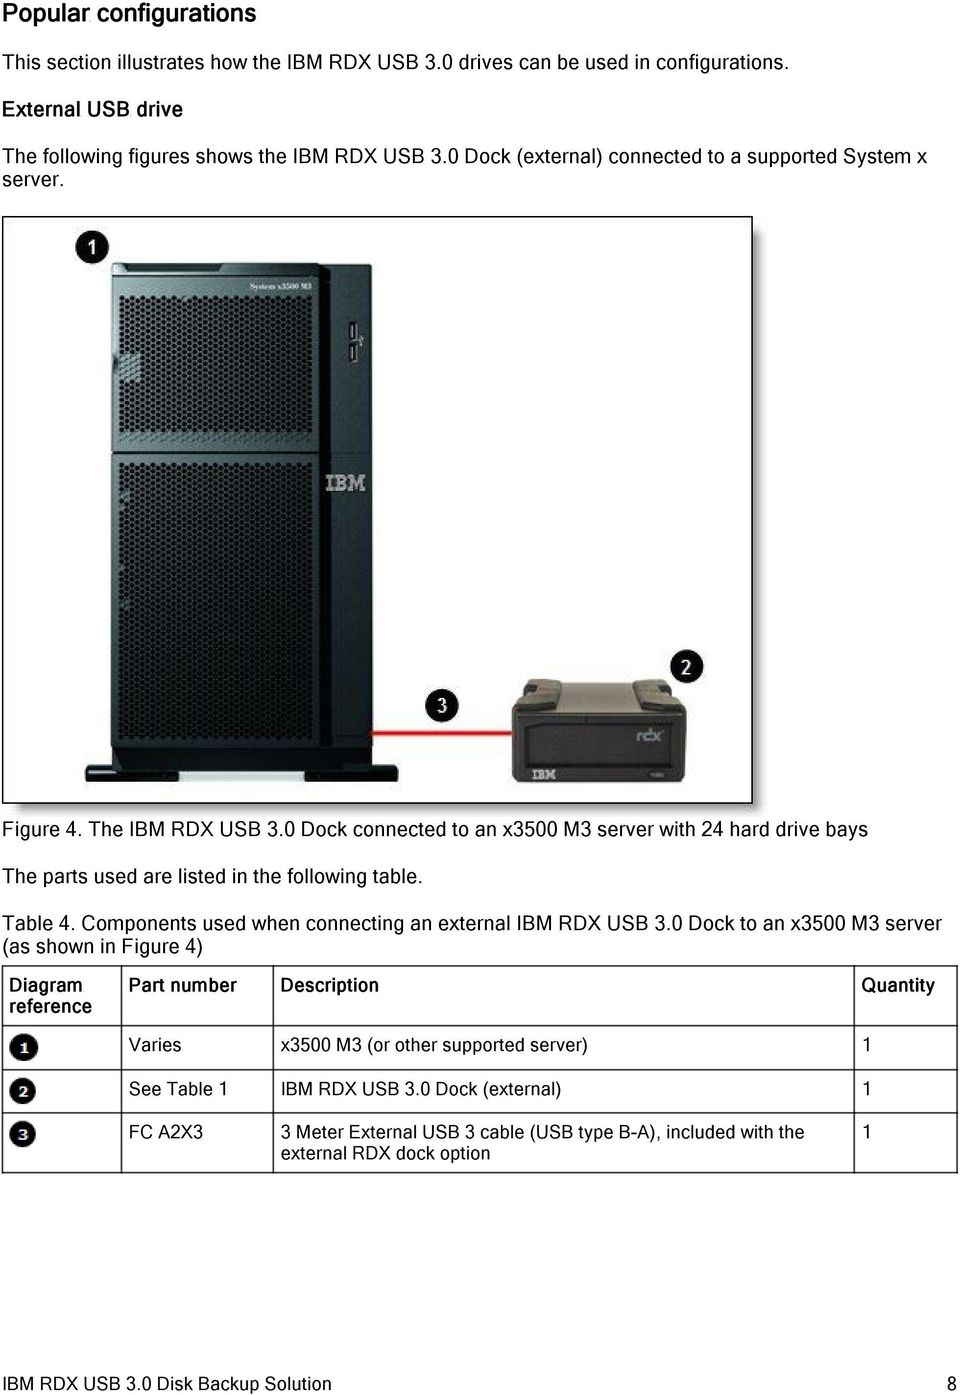 0 Dock connected to an x3500 M3 server with 24 hard drive bays The parts used are listed in the following table. Table 4. Components used when connecting an external IBM RDX USB 3.